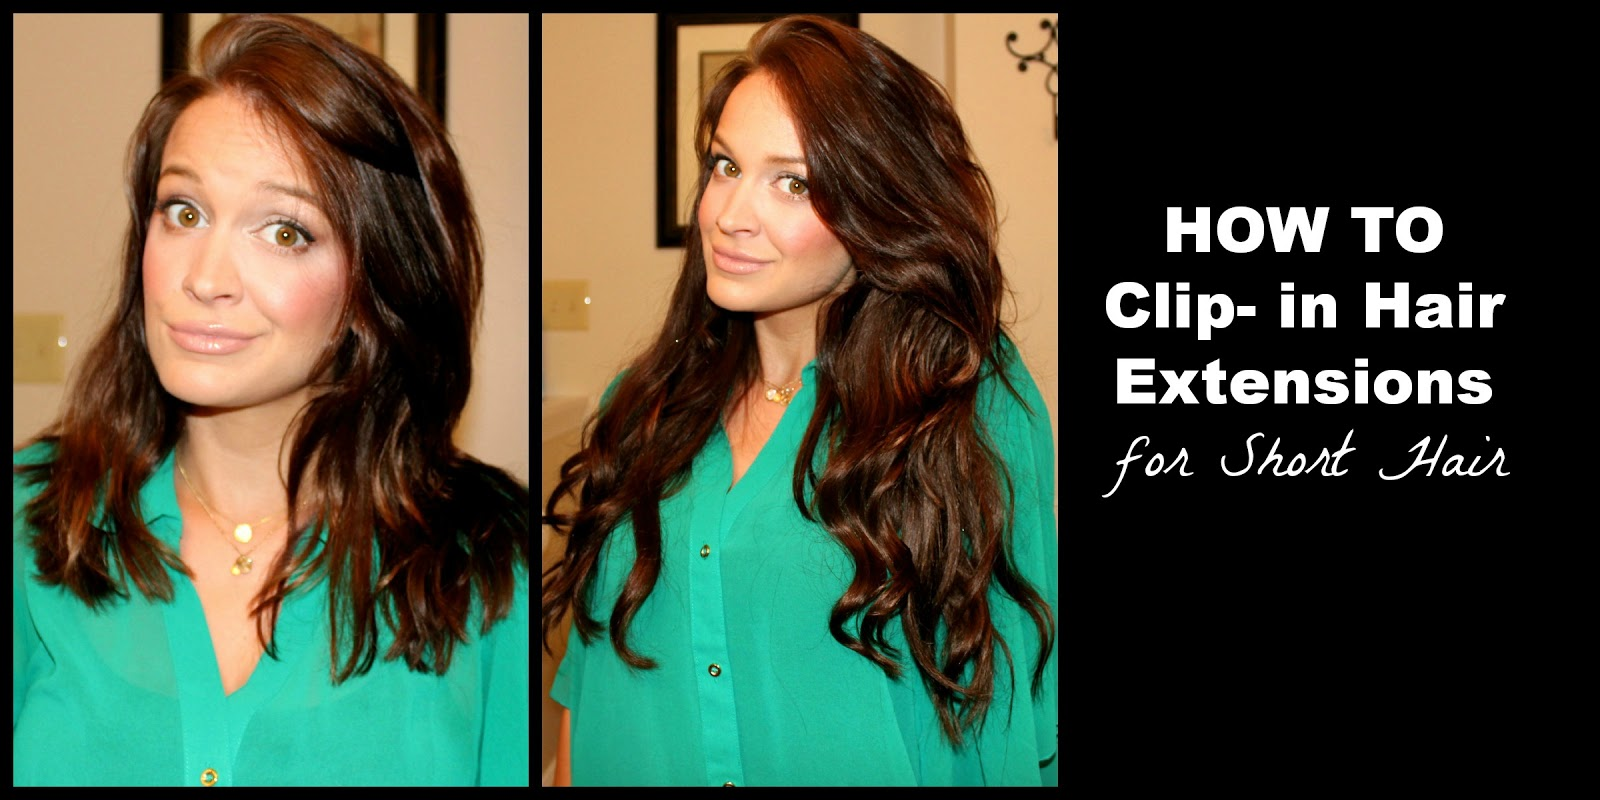 Bentleyblonde how to clip in hair extensions for short hair how to clip in hair extensions for short hair pmusecretfo Image collections